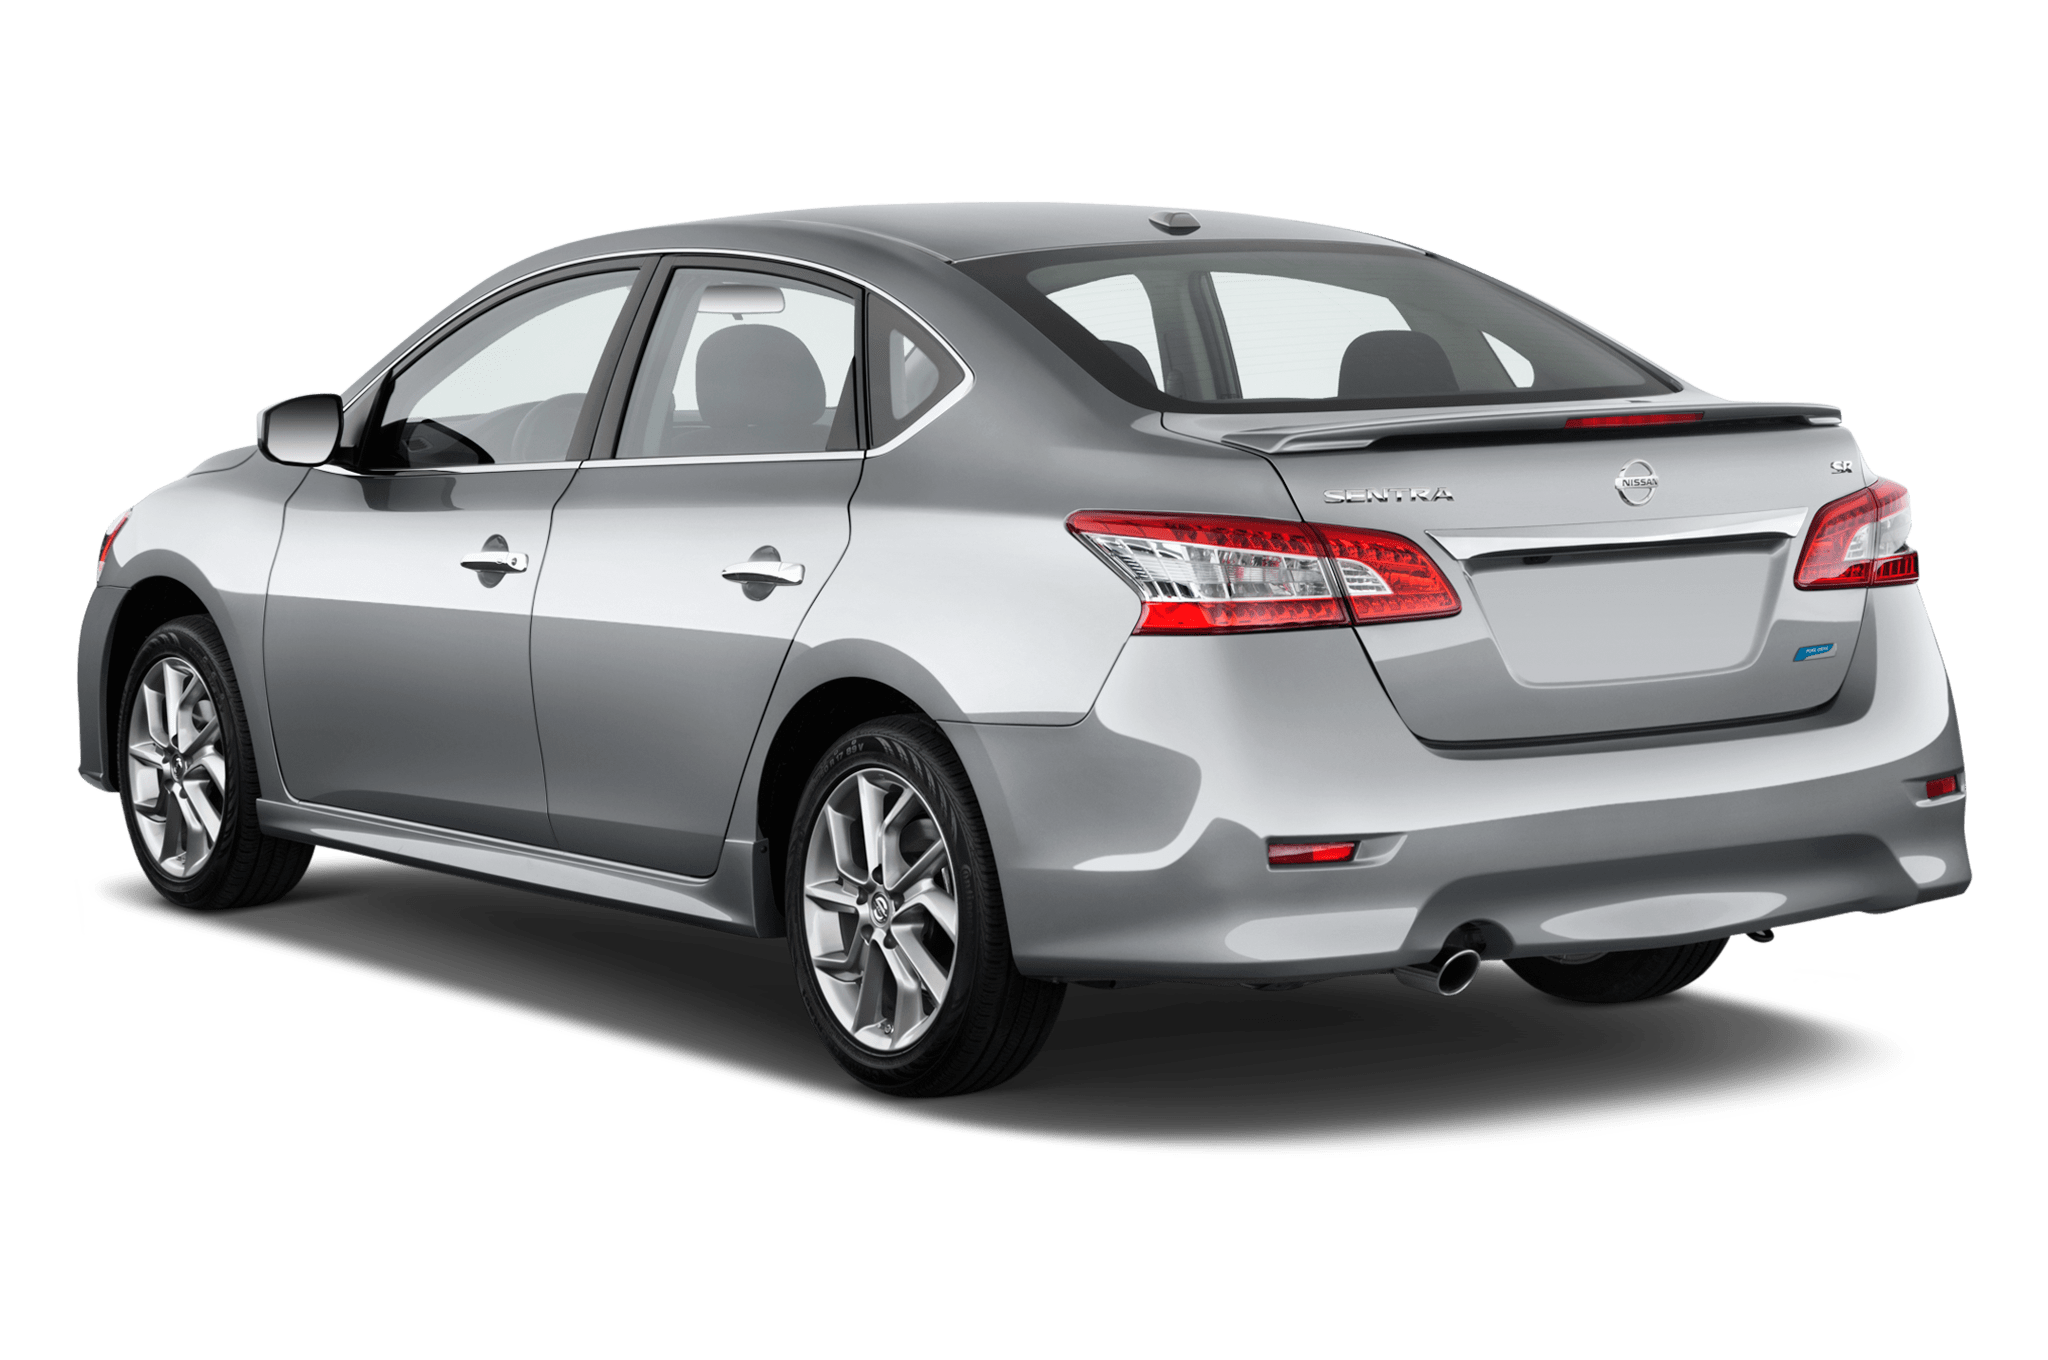 Nissan Sentra for hire at Just In Time Transportation Services